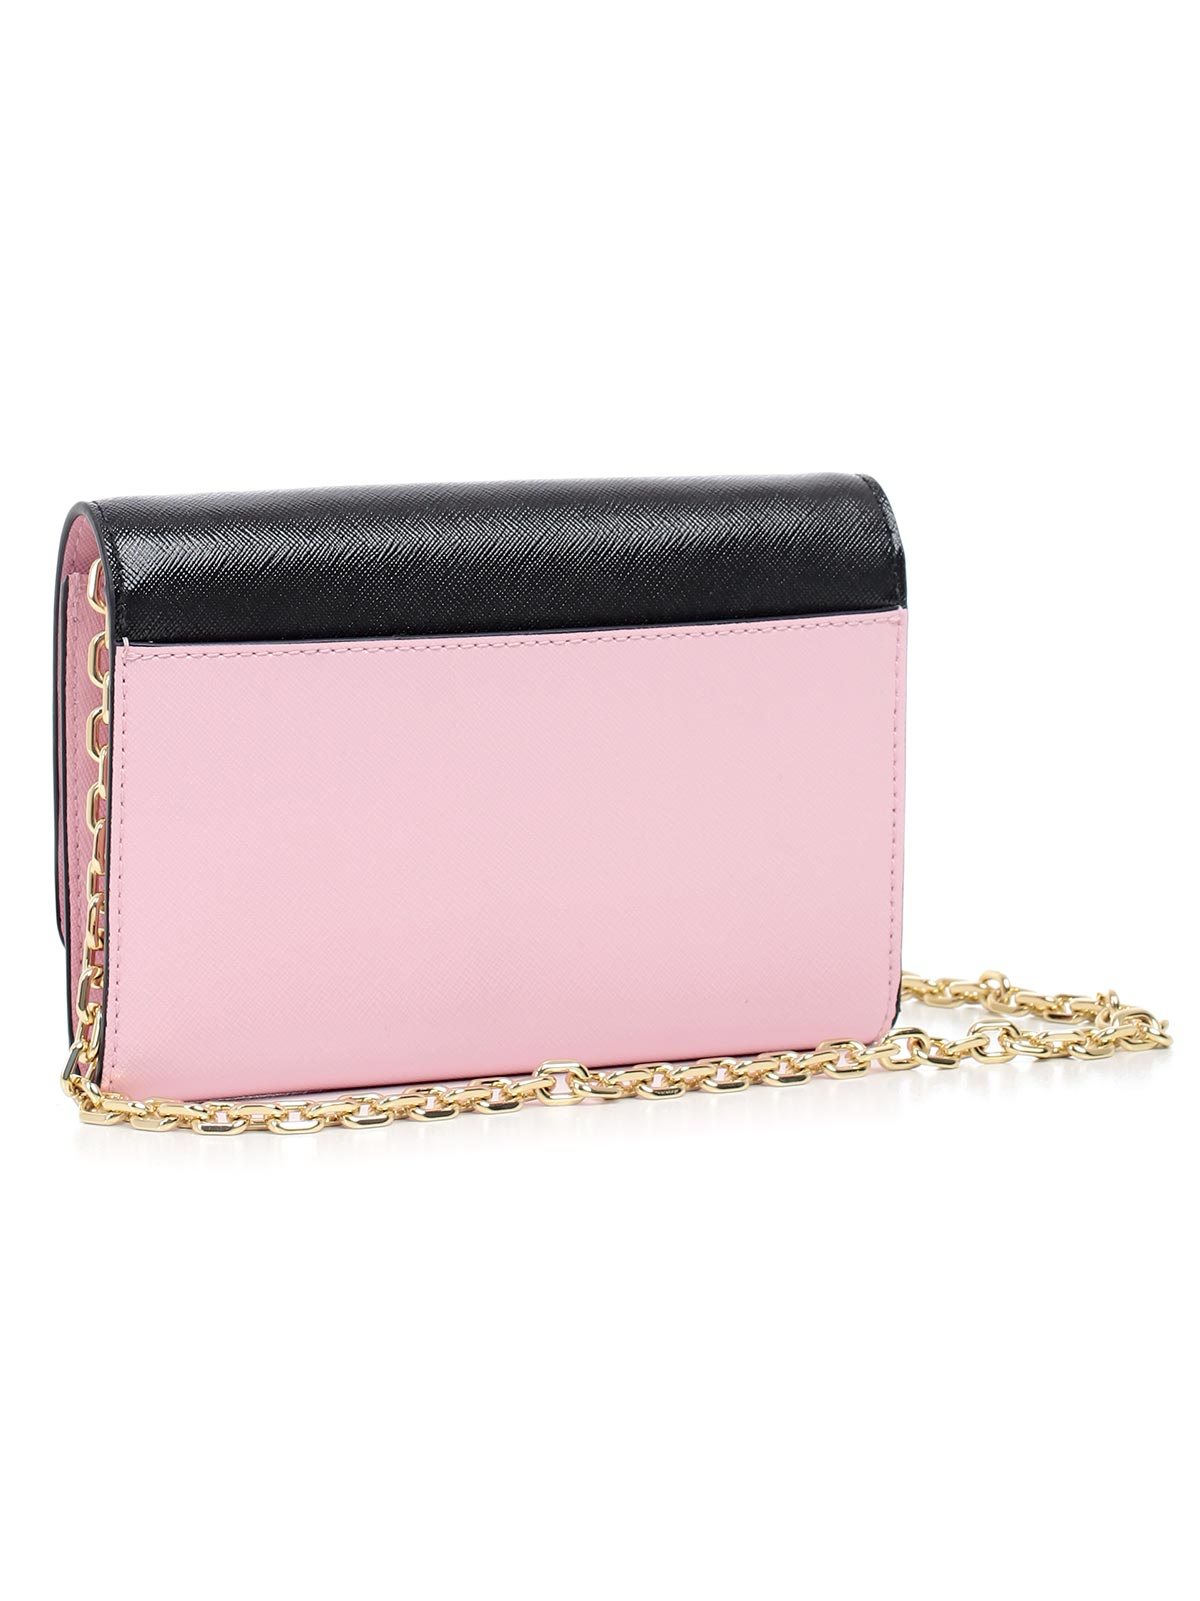 Picture of Marc Jacobs Wallets & Purses